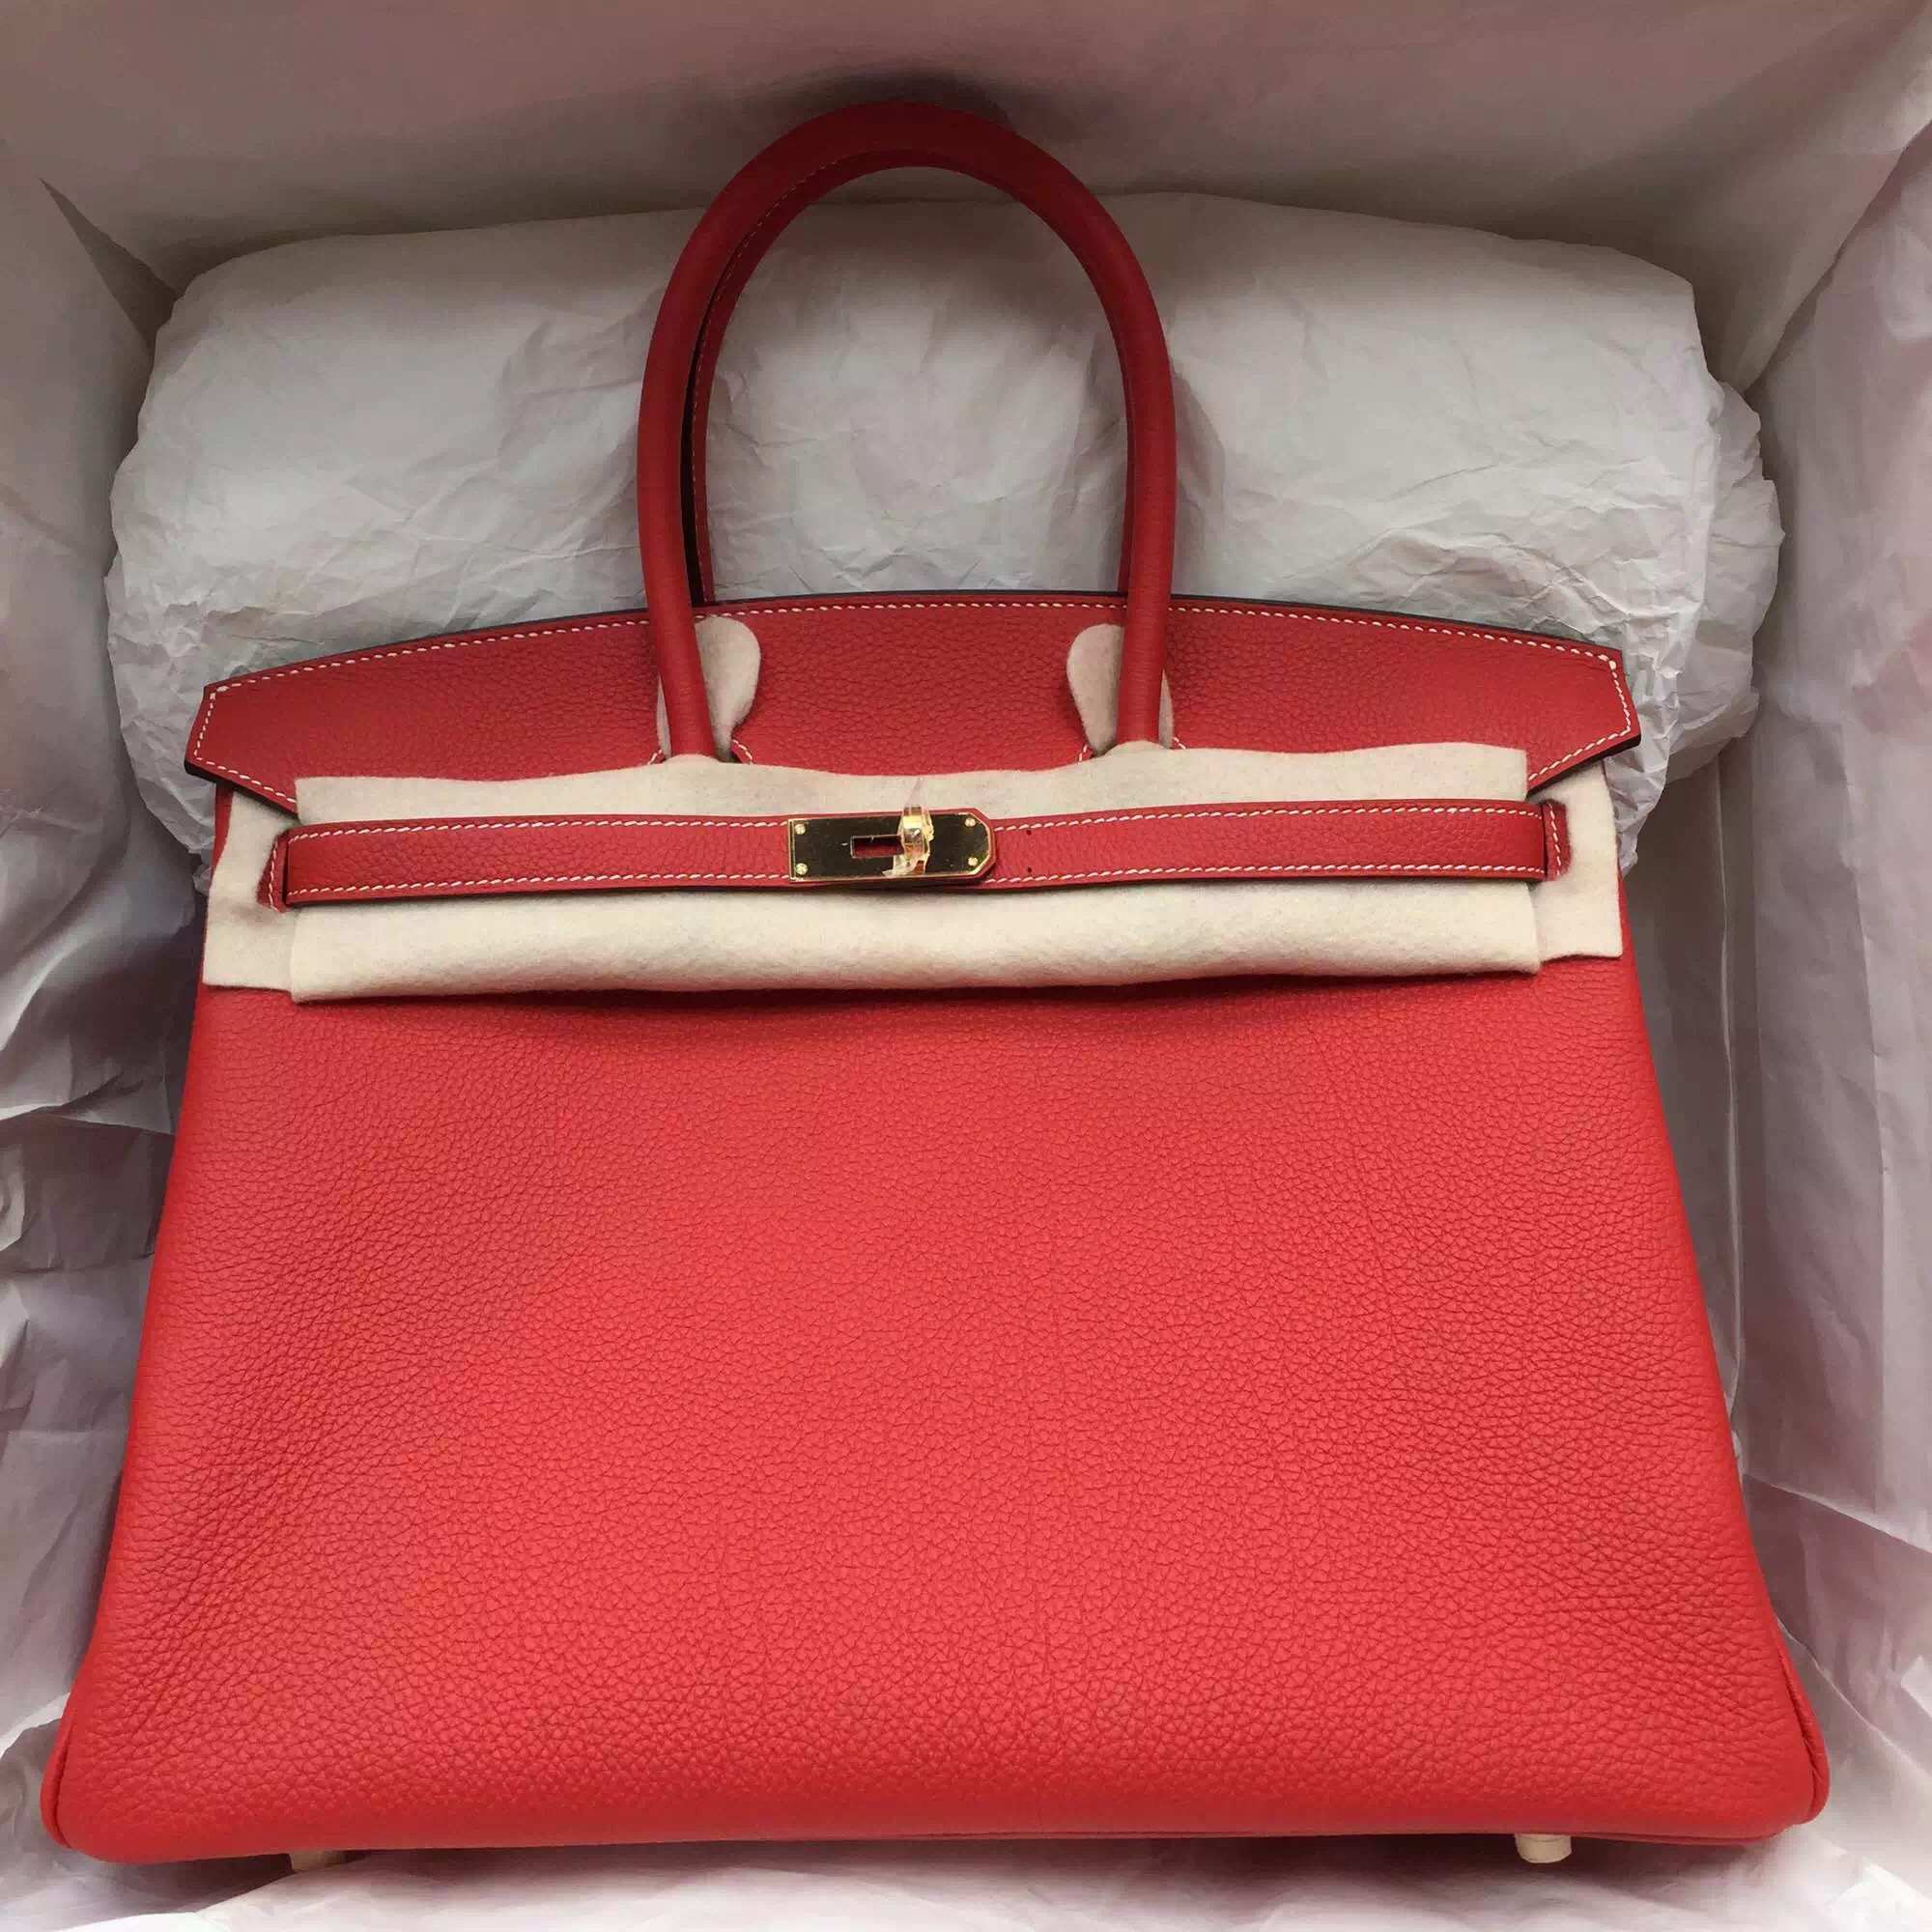 hermes togo red gold hardware satchel geranium